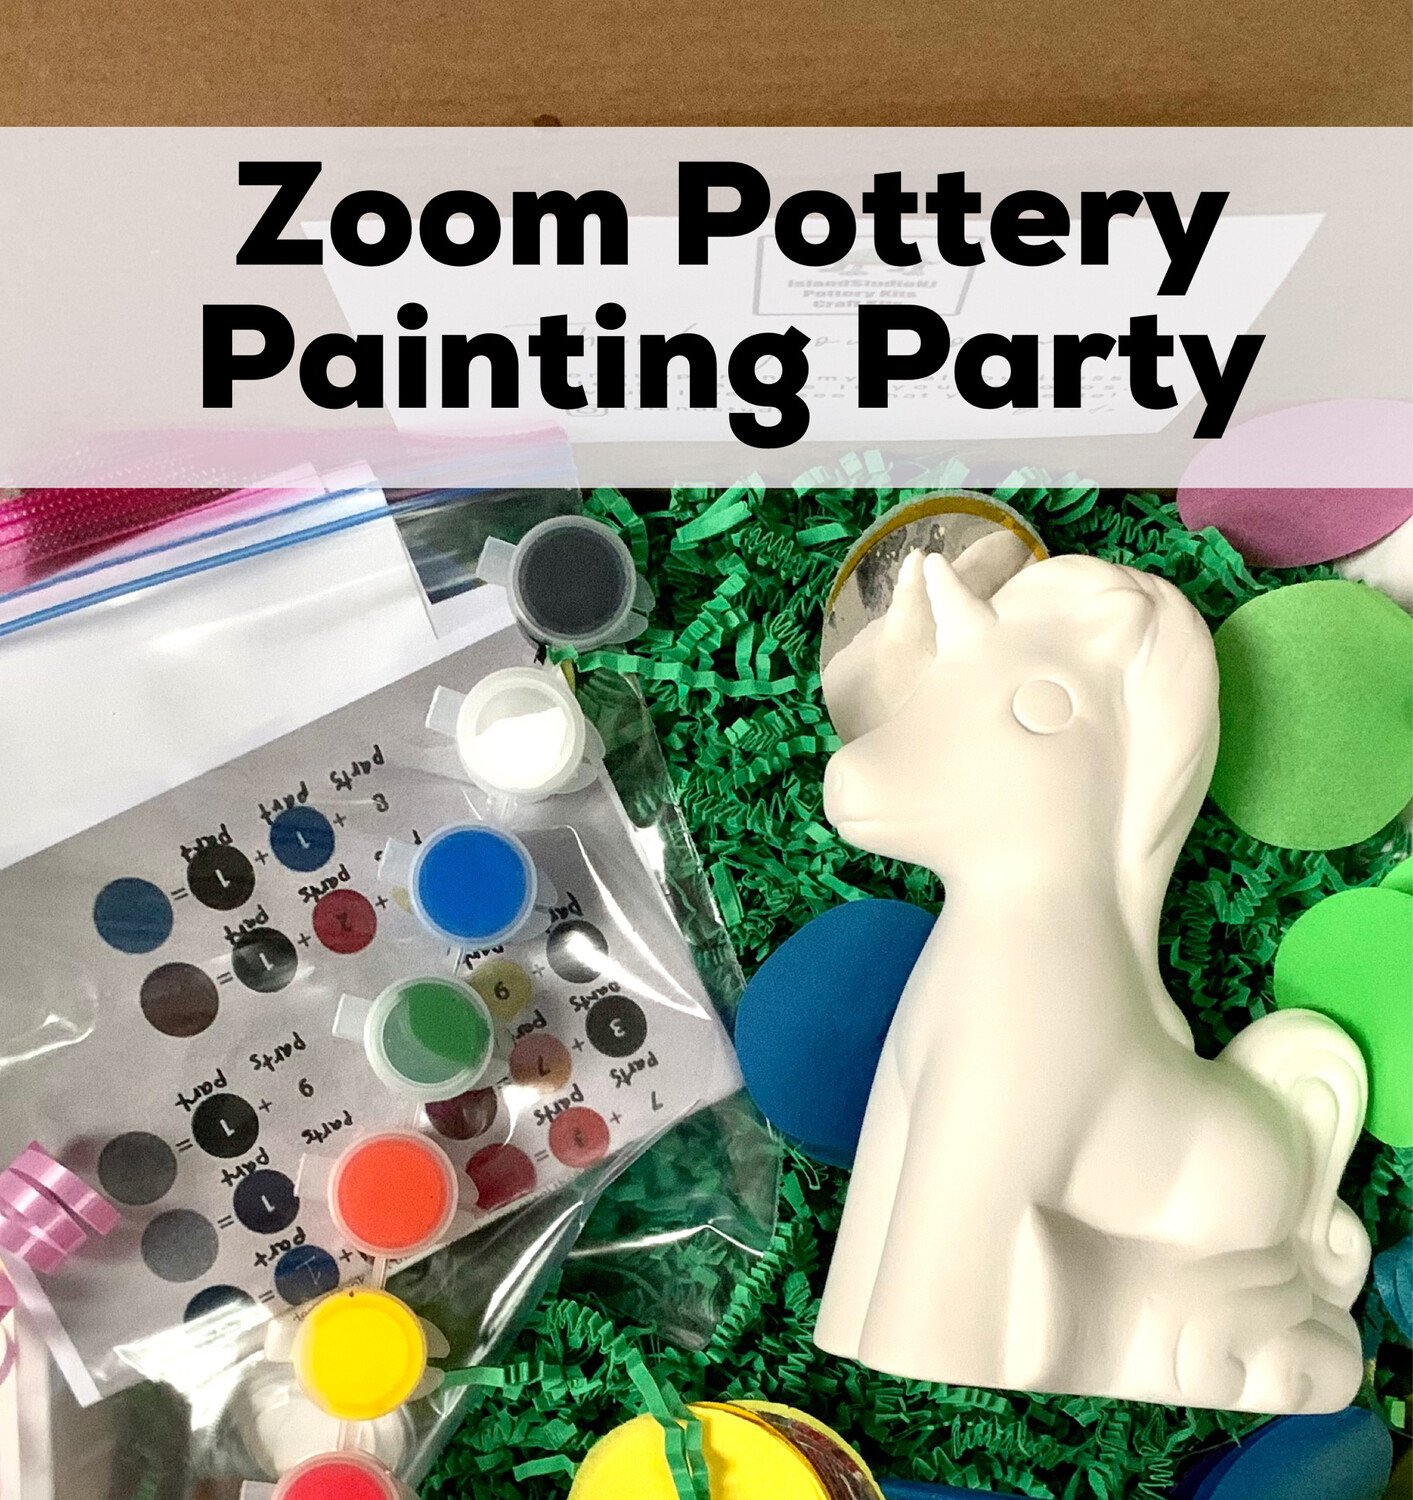 Zoom Pottery Painting Party August 24, 2021 from 3-4:30pm - Free With Pottery Purchase